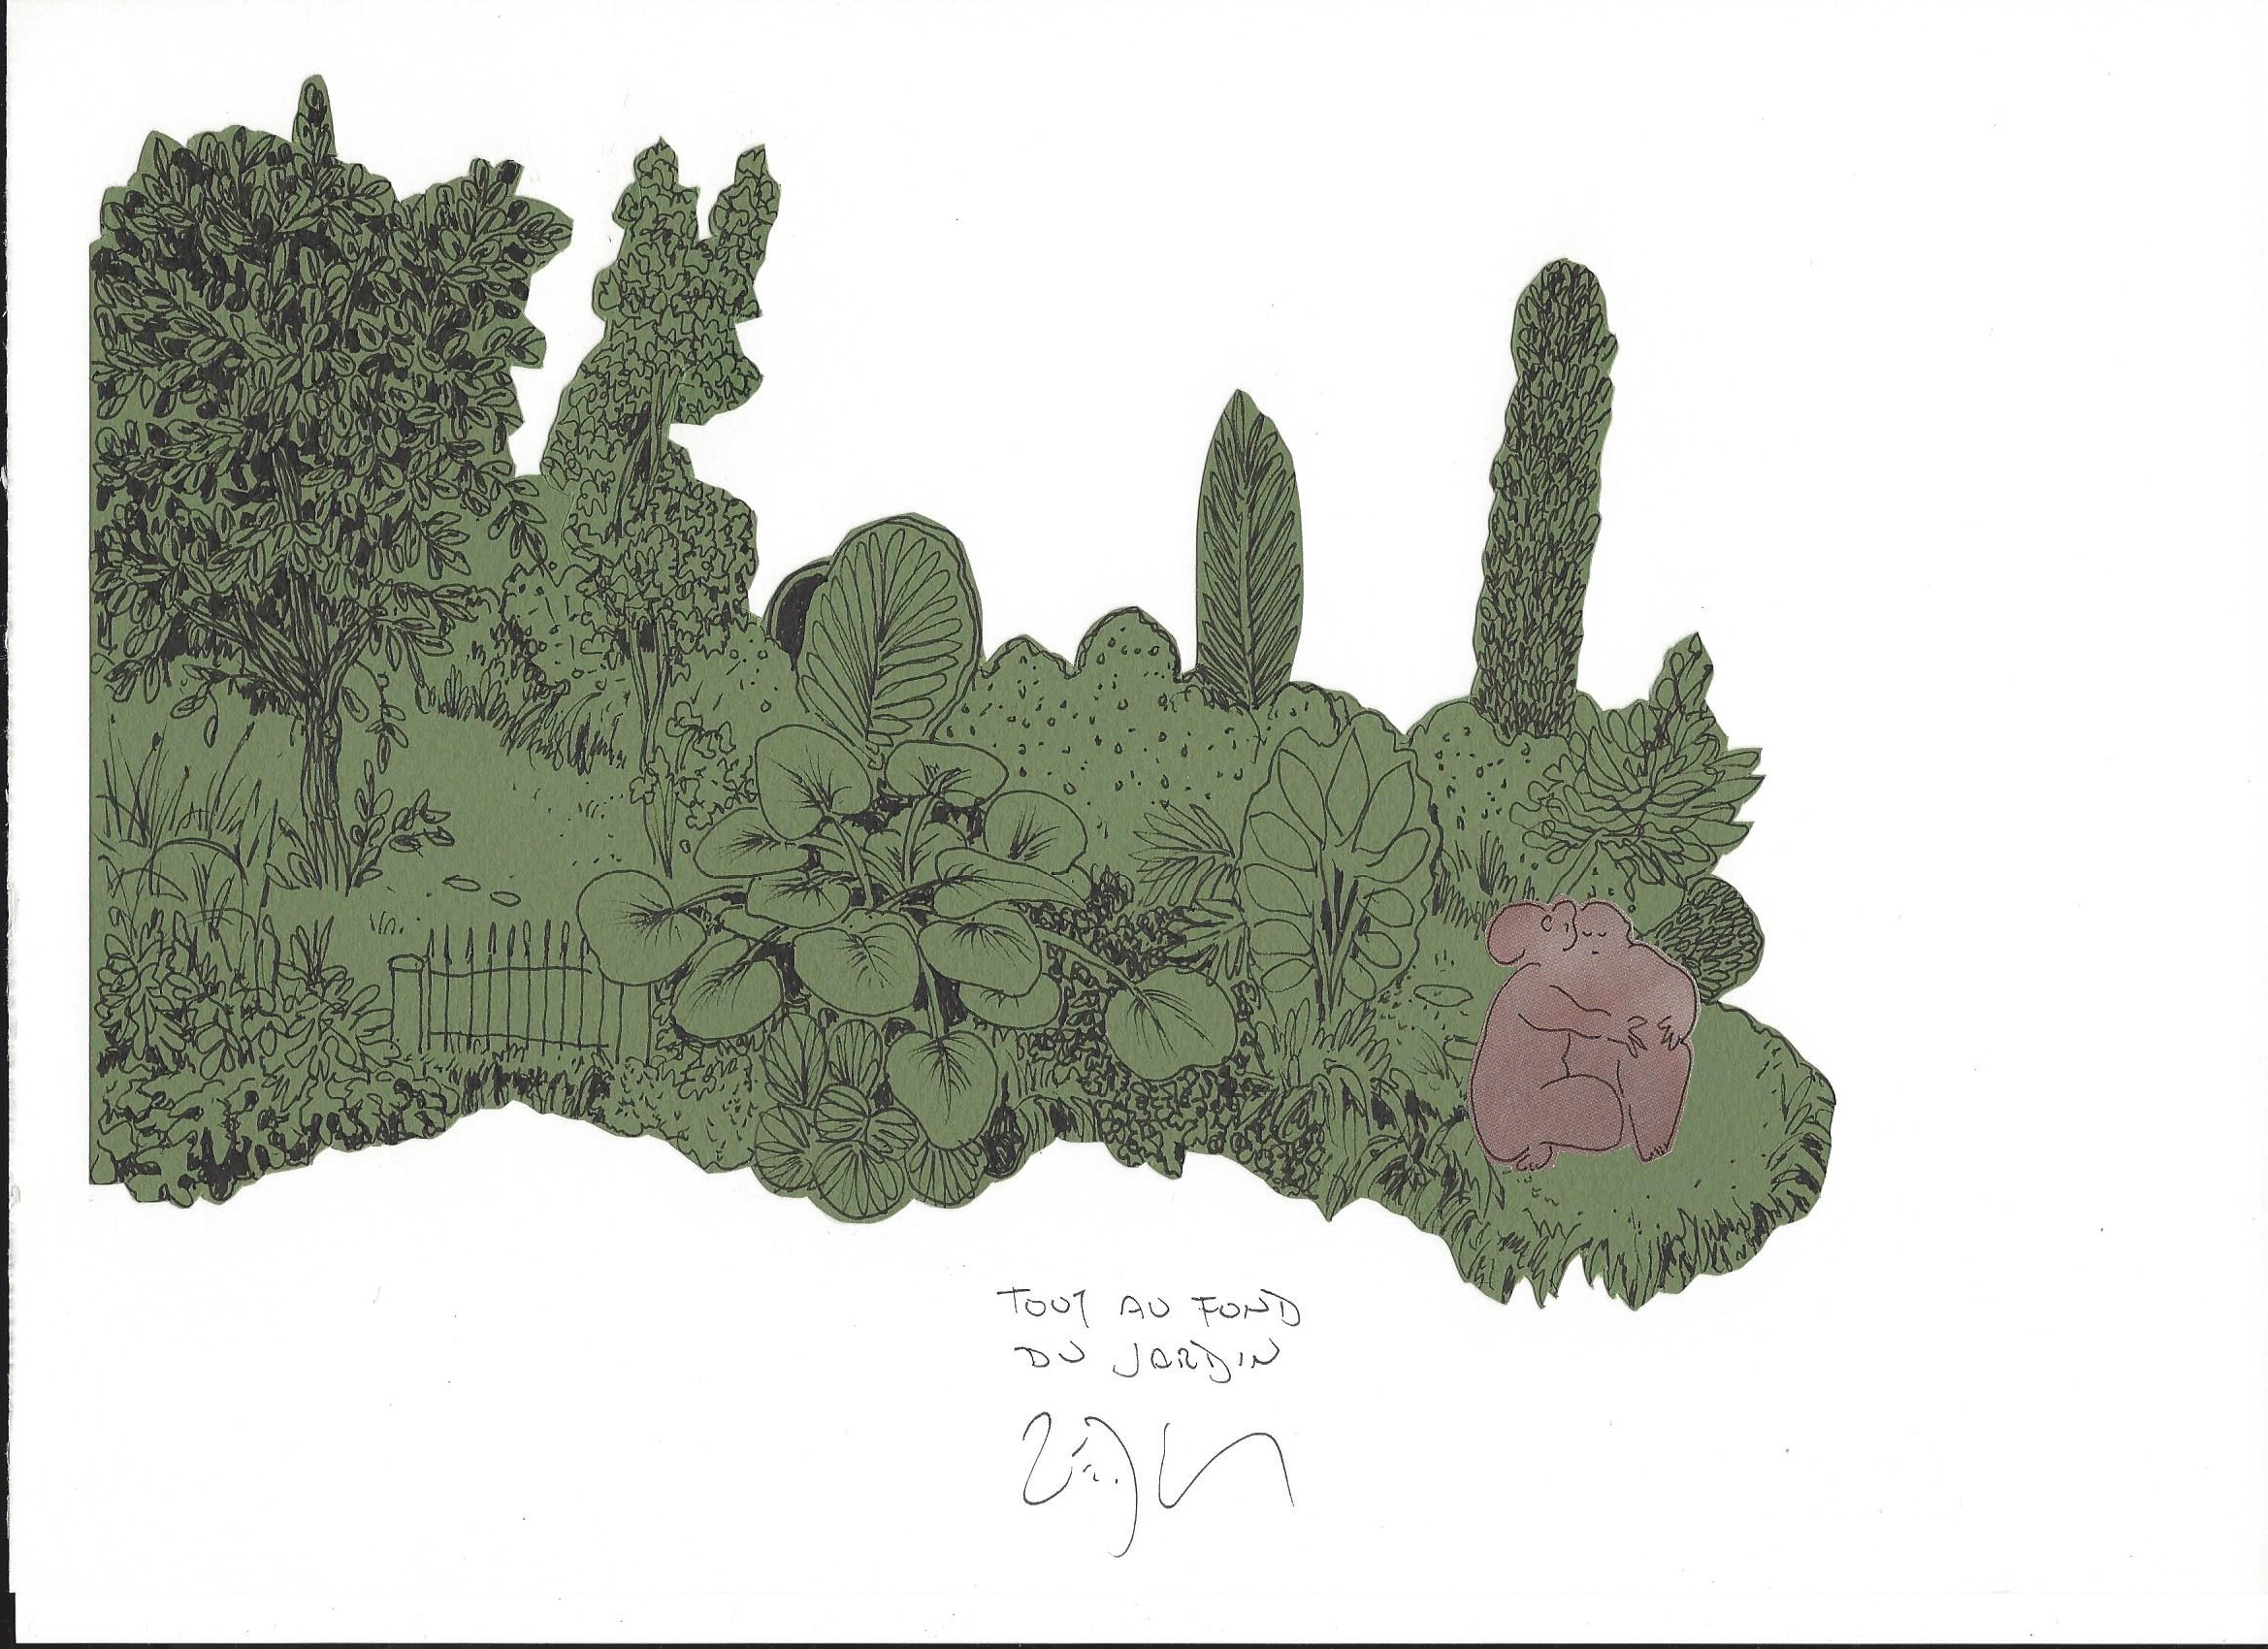 « At the very end of the garden – Tout au fond du jardin »